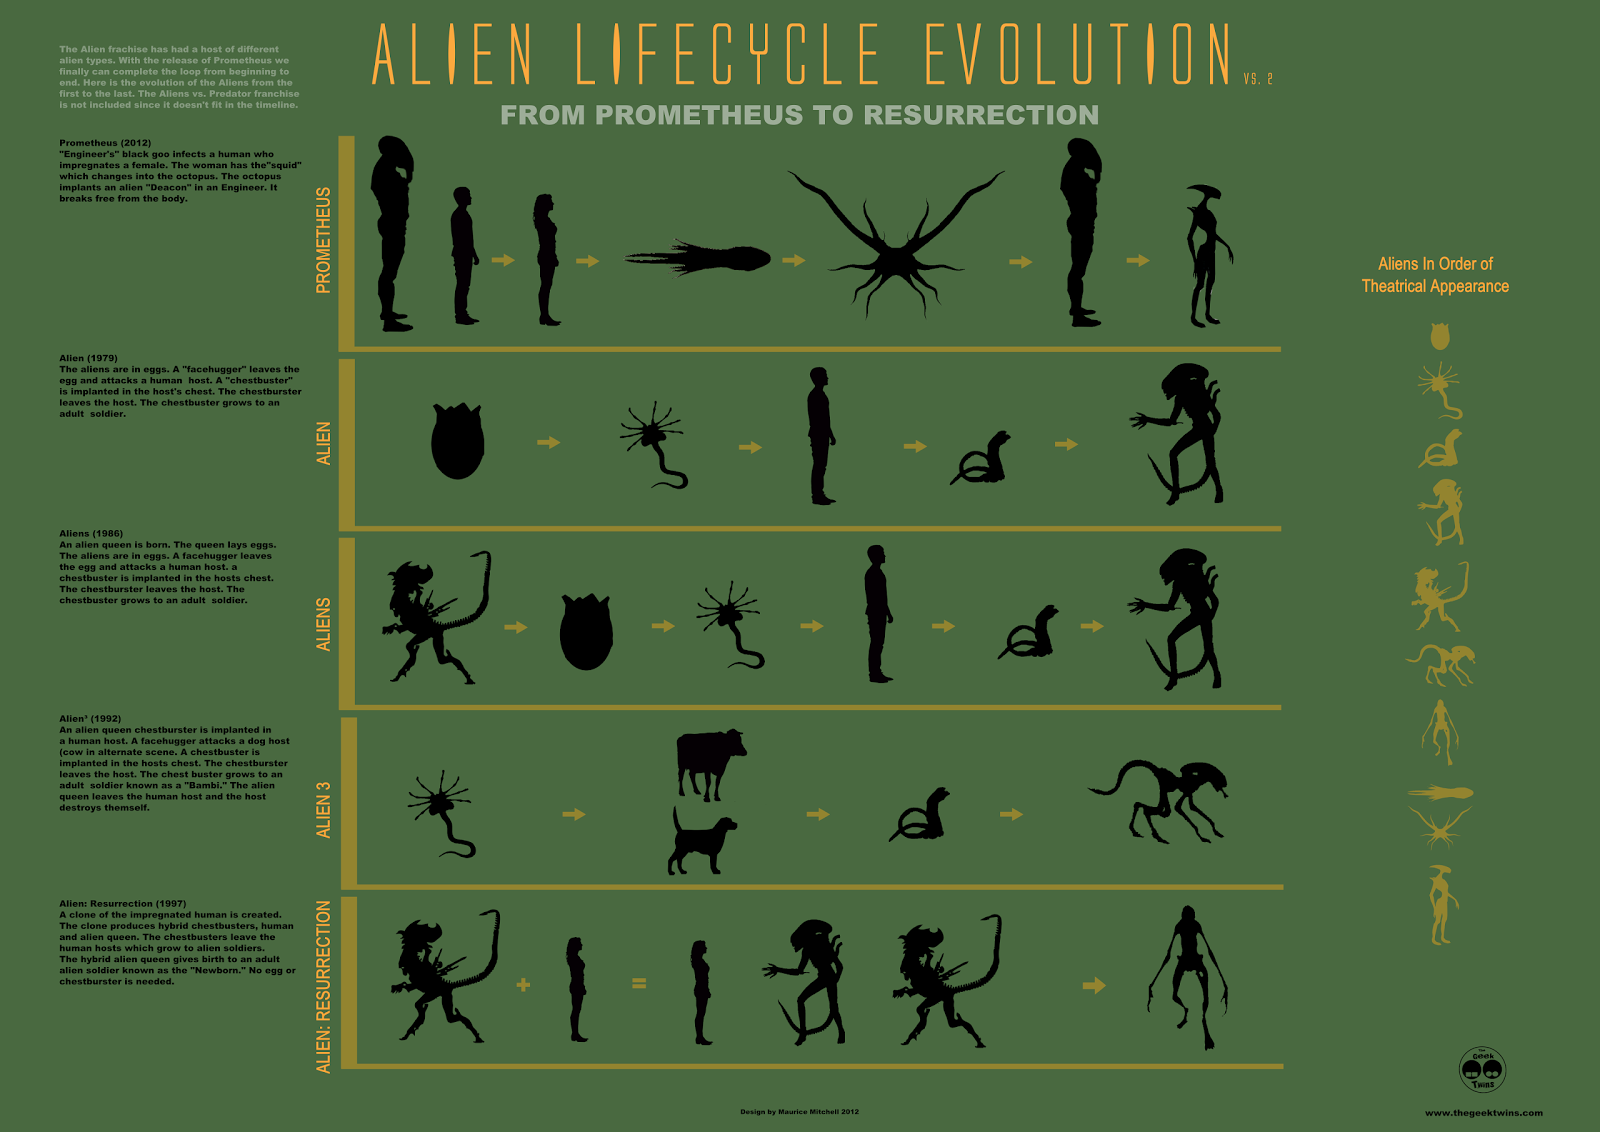 Evolution of the alien infographic from prometheus to alien